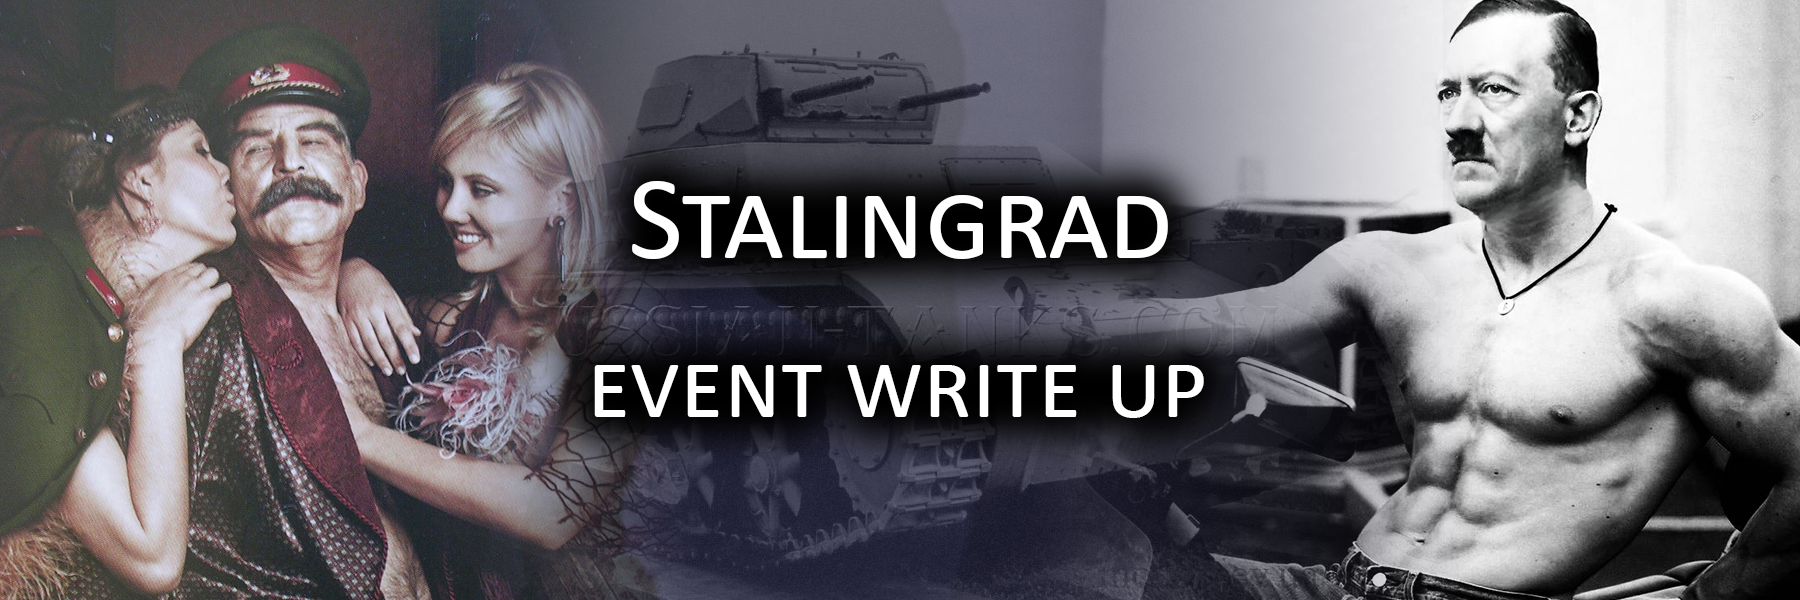 Stalingrad Event Writeup